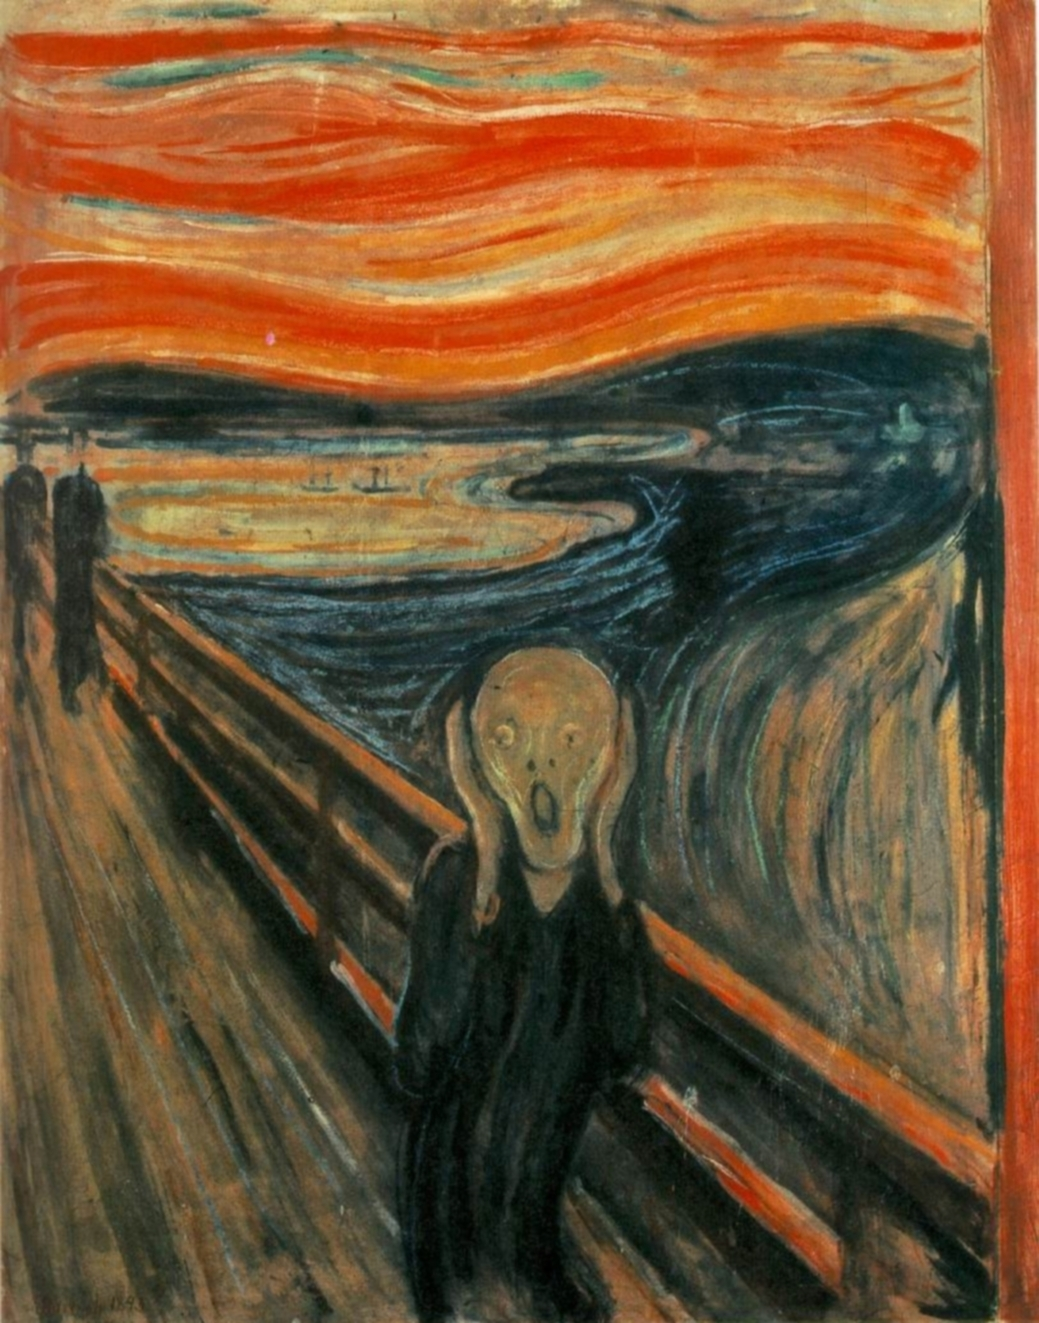 """The Scream"" by Edvard Munch - WebMuseum at ibiblioPage: http://www.ibiblio.org/wm/paint/auth/munch/Image URL: http://www.ibiblio.org/wm/paint/auth/munch/munch.scream.jpg. Licensed under Public Domain via Commons - https://commons.wikimedia.org/wiki/File:The_Scream.jpg#/media/File:The_Scream.jpg"